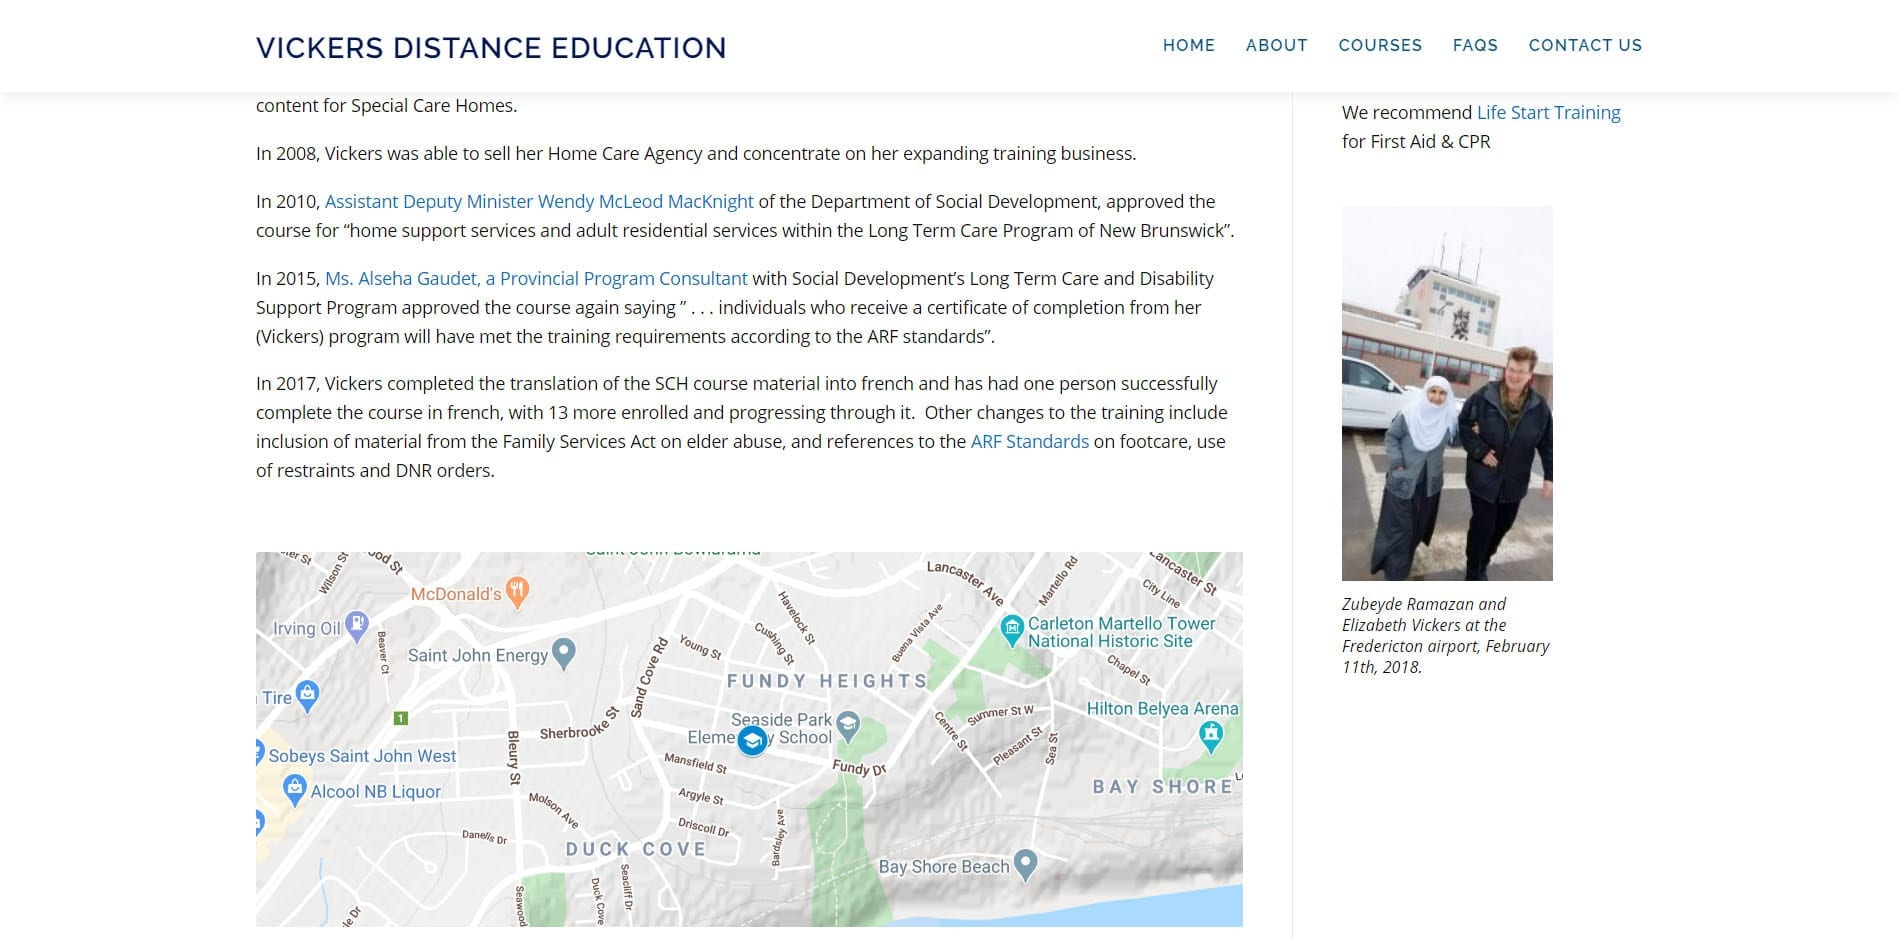 Vickers Distance Educaiton Map - Supported by Eagle Digital Media